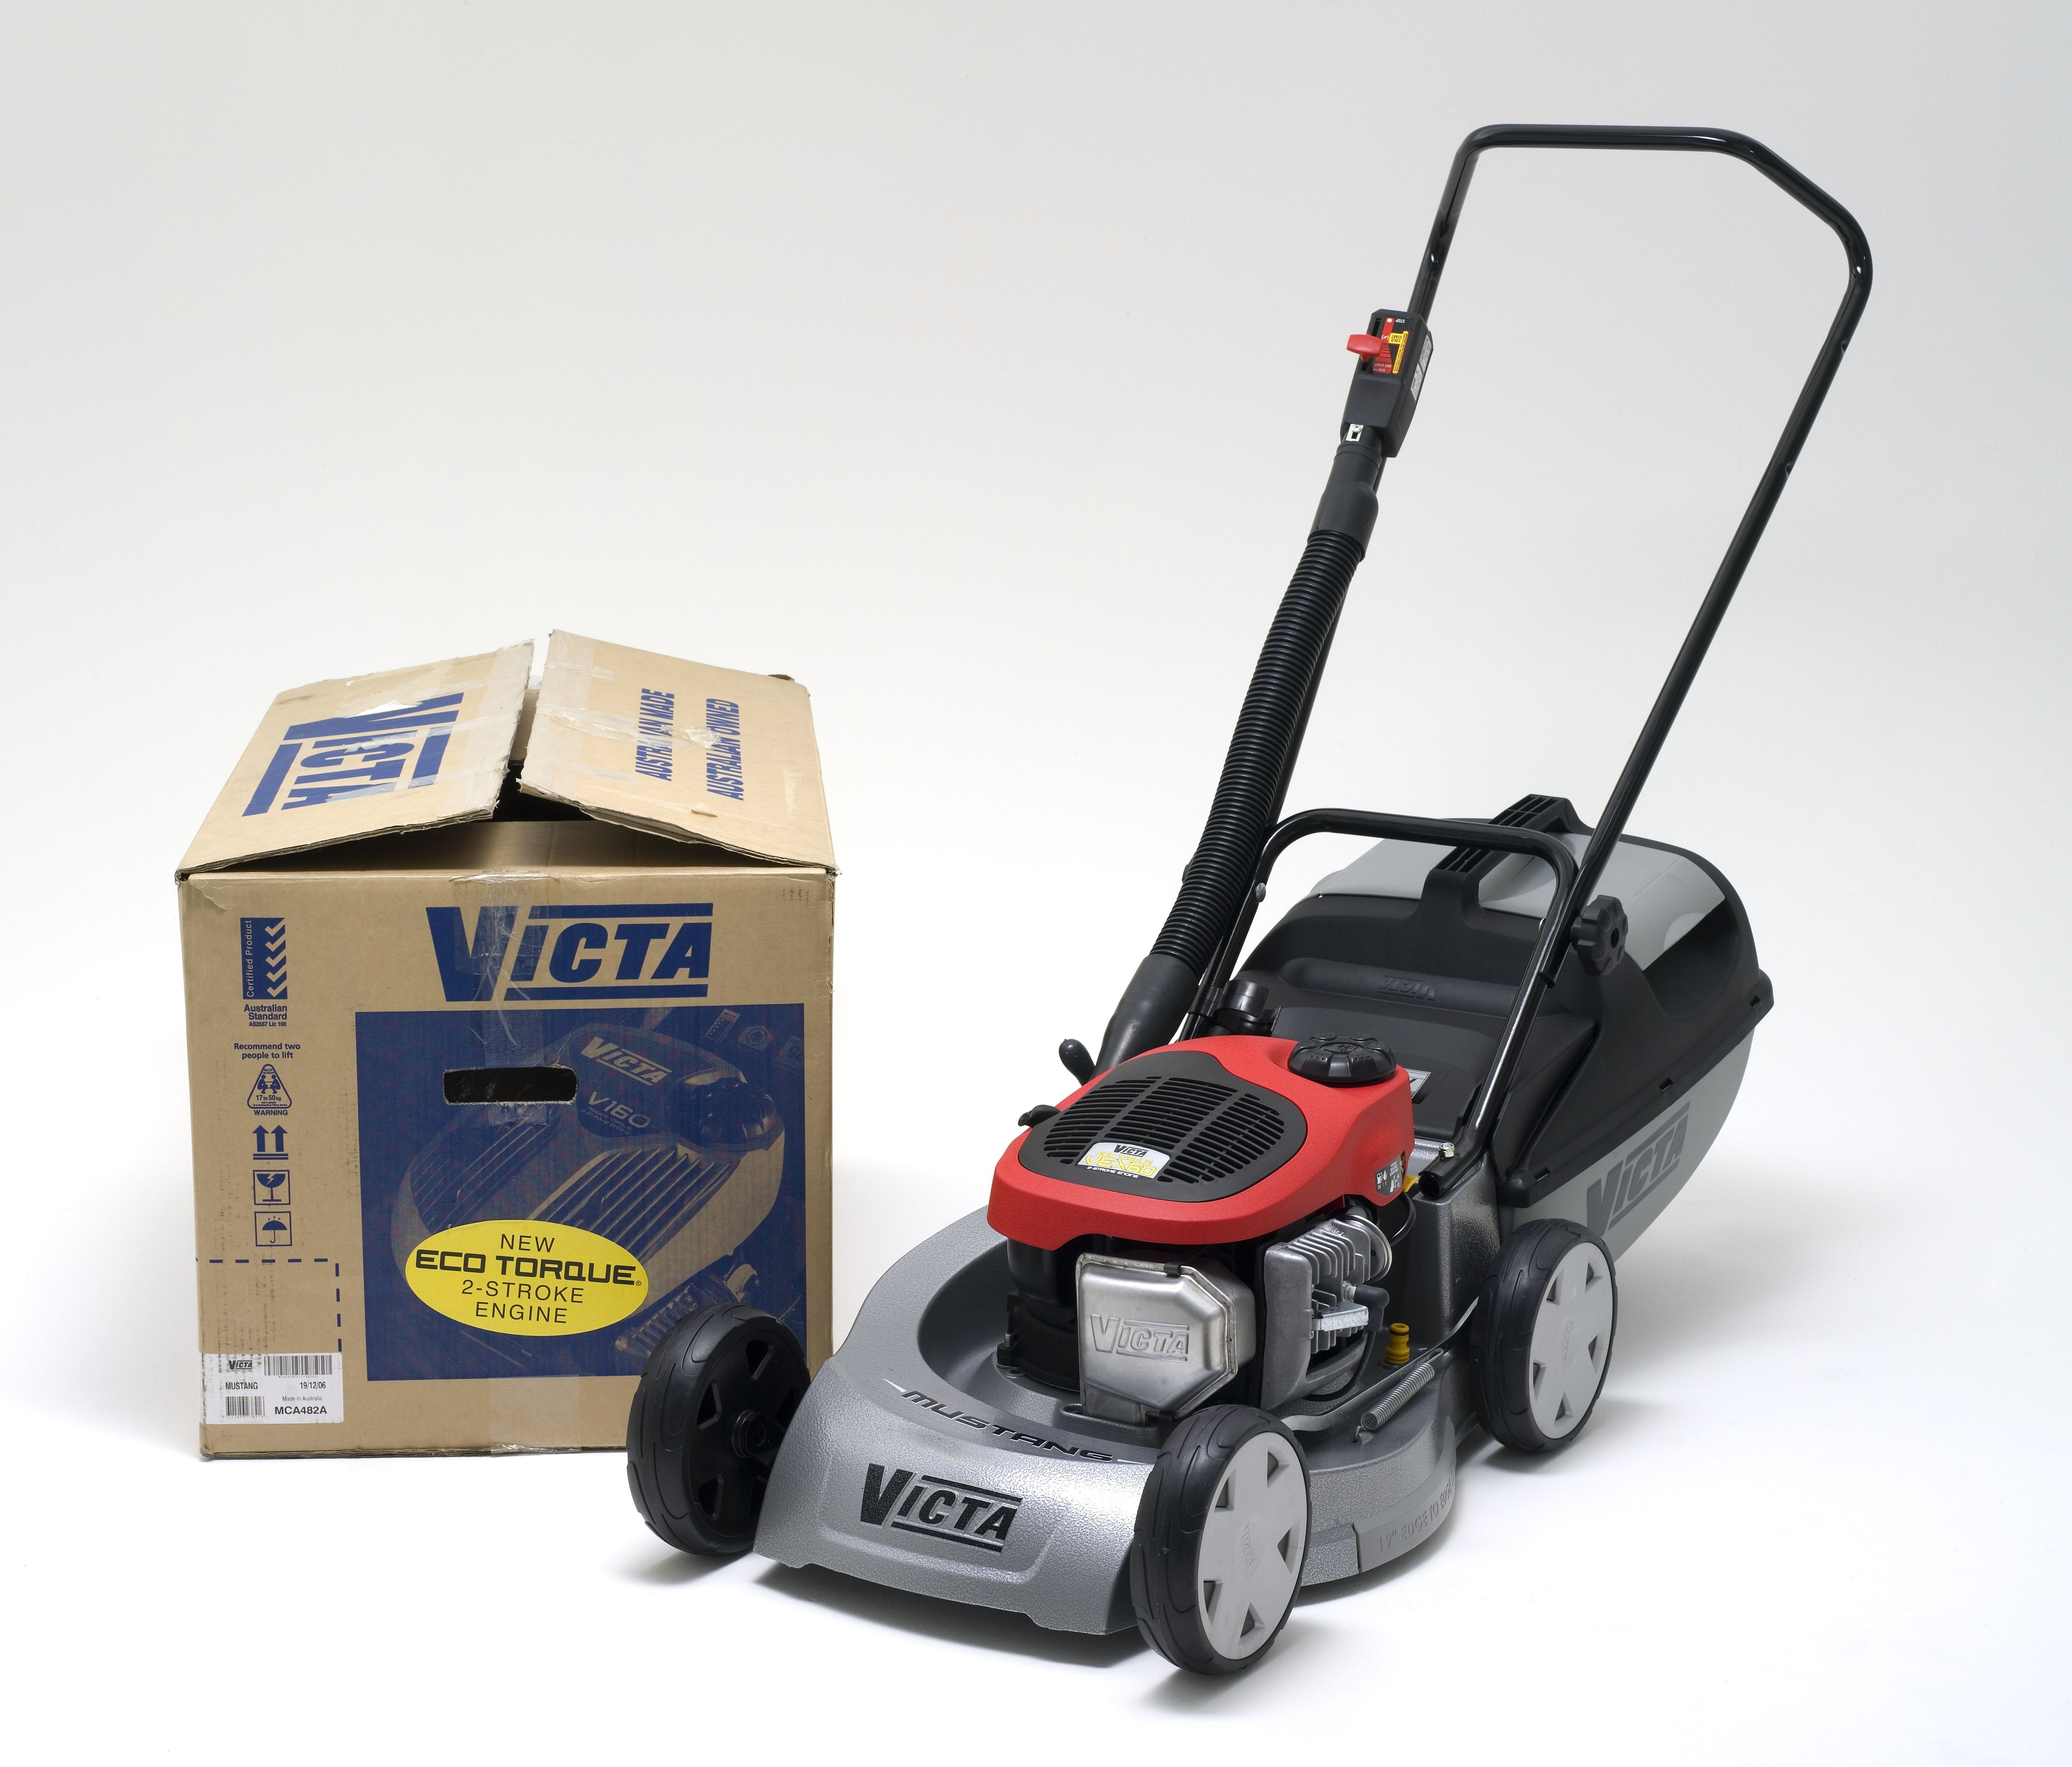 Victa Mustang lawnmower with Eco Torque engine - MAAS Collection